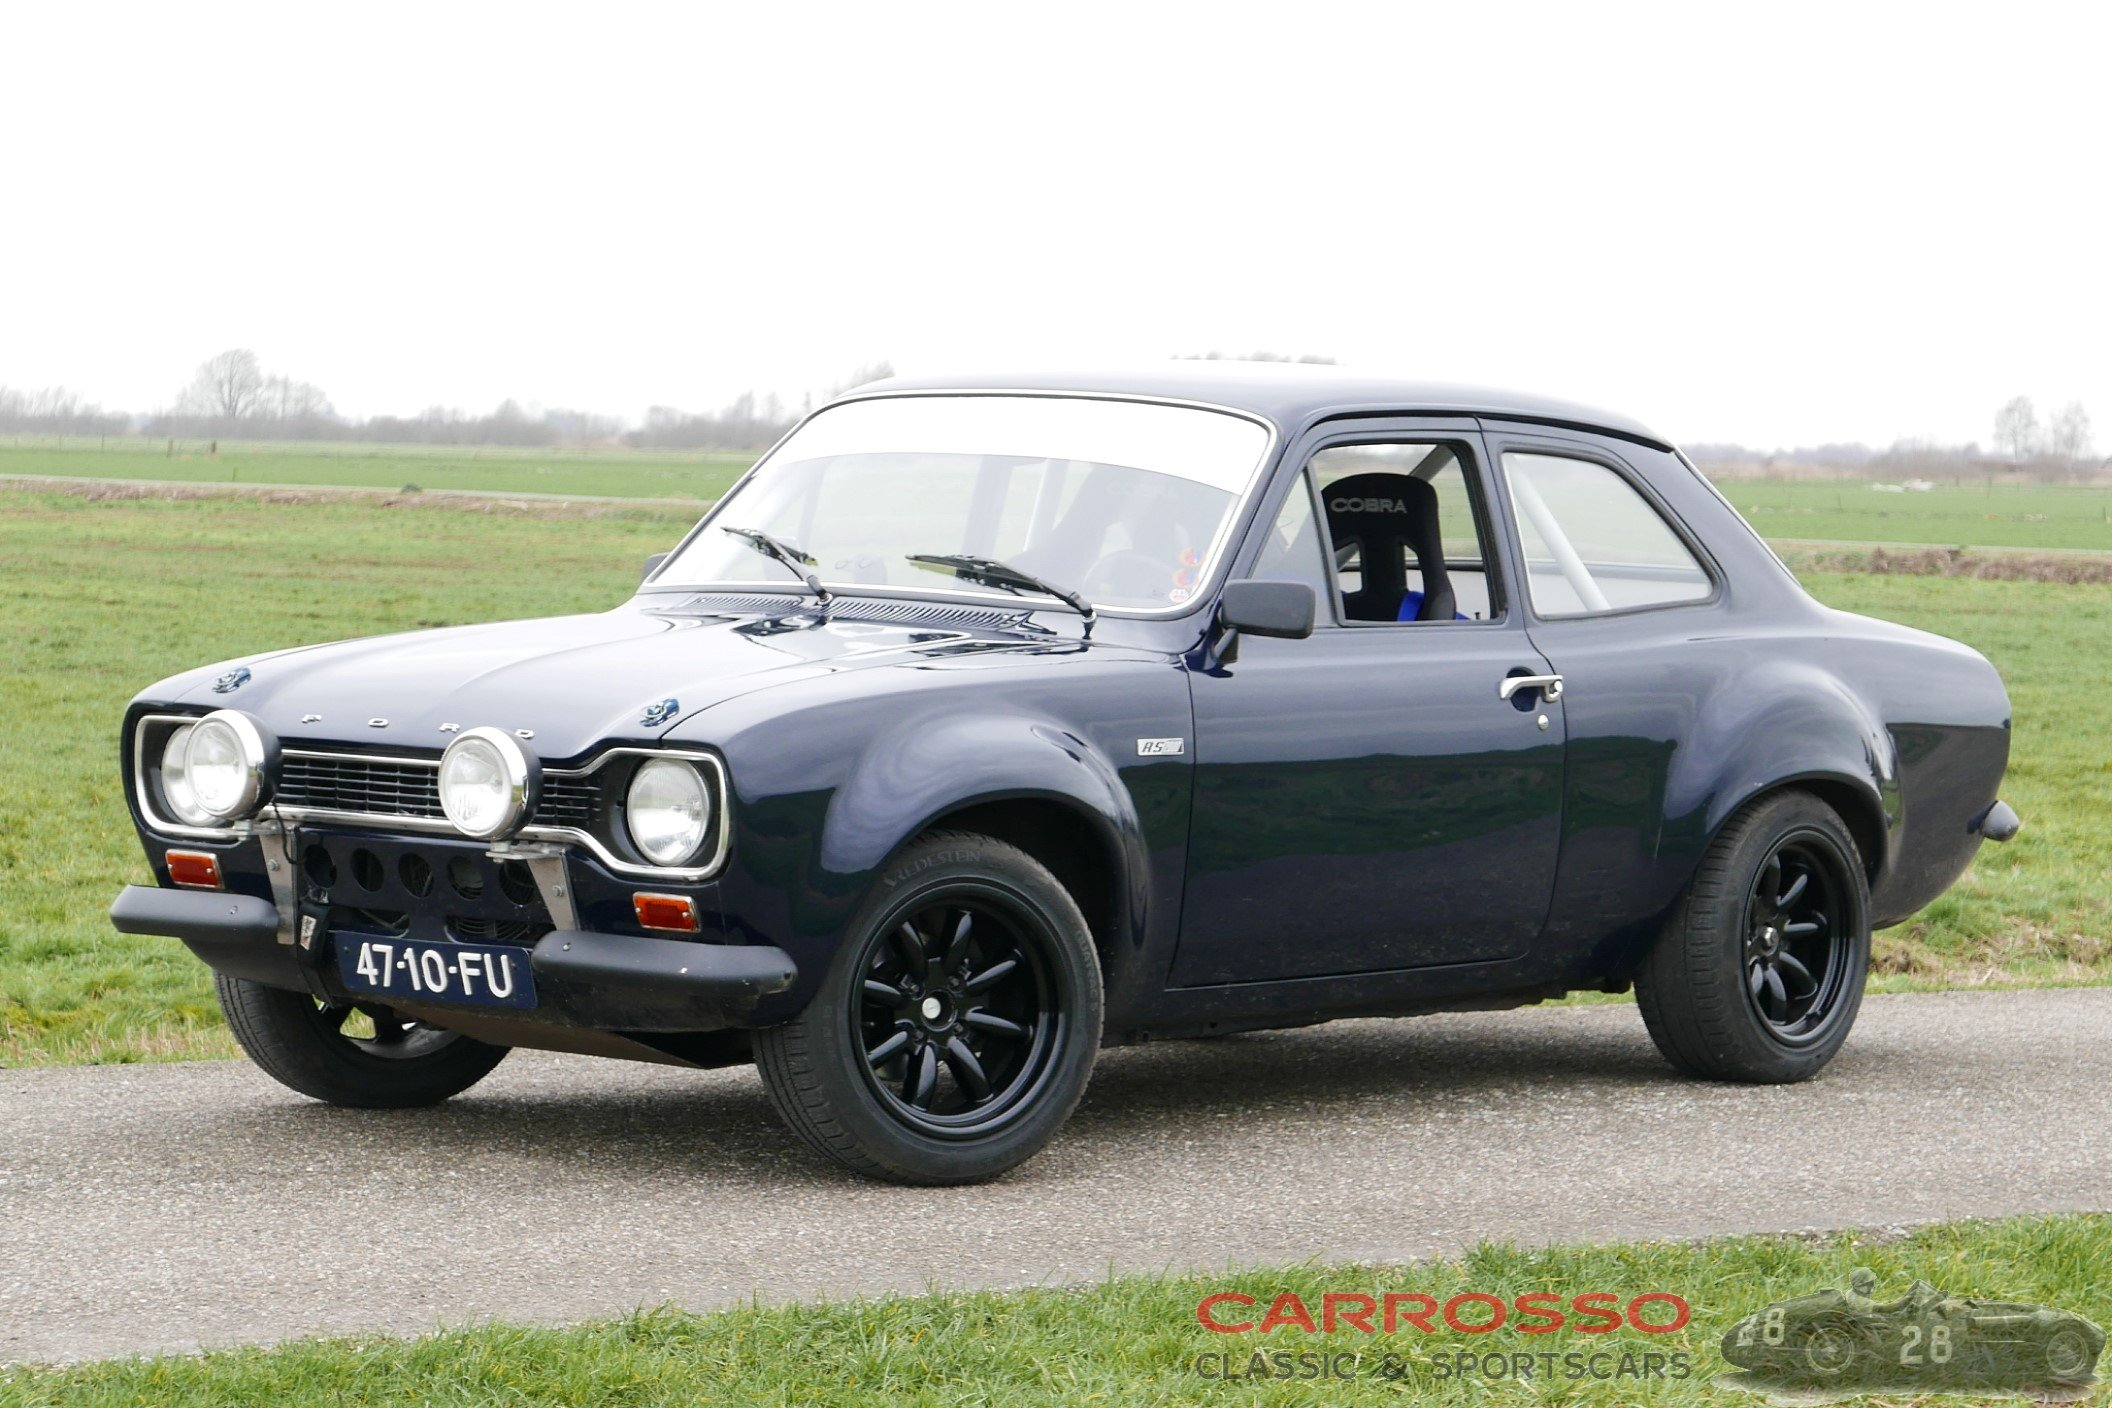 17Ford Escort Rally (26)